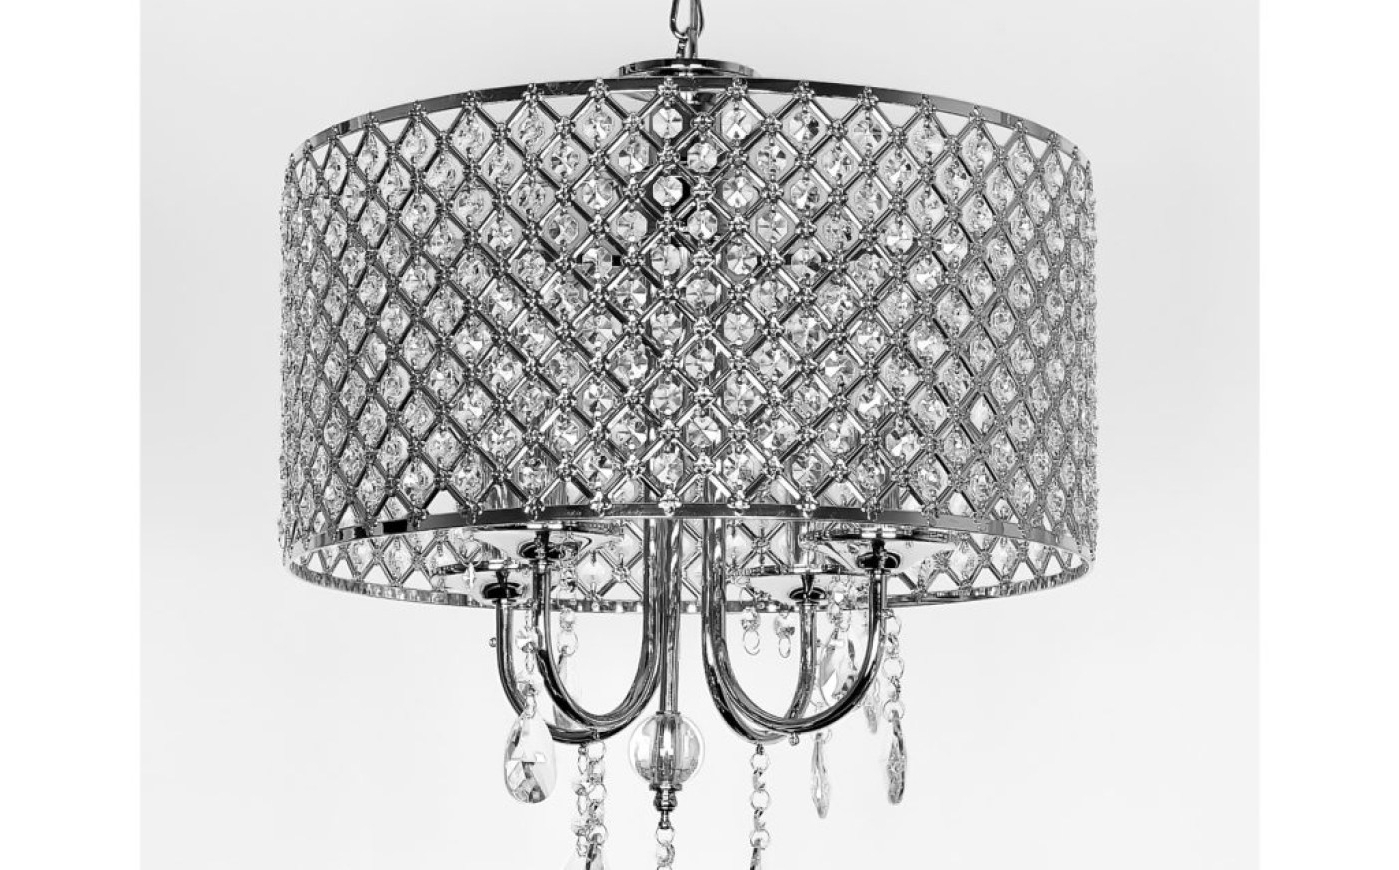 Chandelier Light Fixture For Ceiling Fan Intended For Popular Chandeliers Design : Amazing Black Chandelier Ceiling Fan With (View 4 of 20)